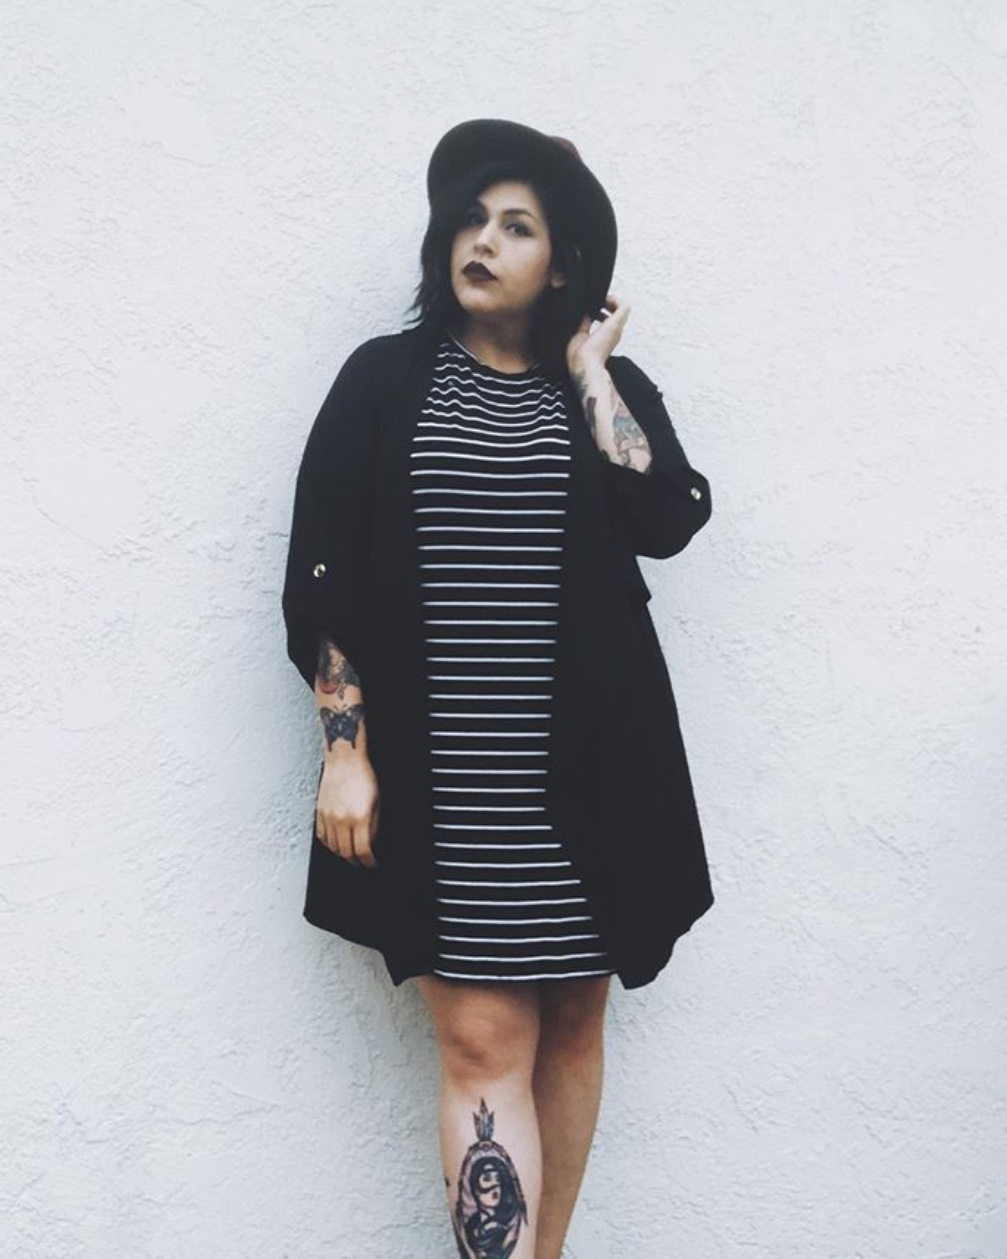 plus size alternative style -a girl black and white striped tunic and long jacket